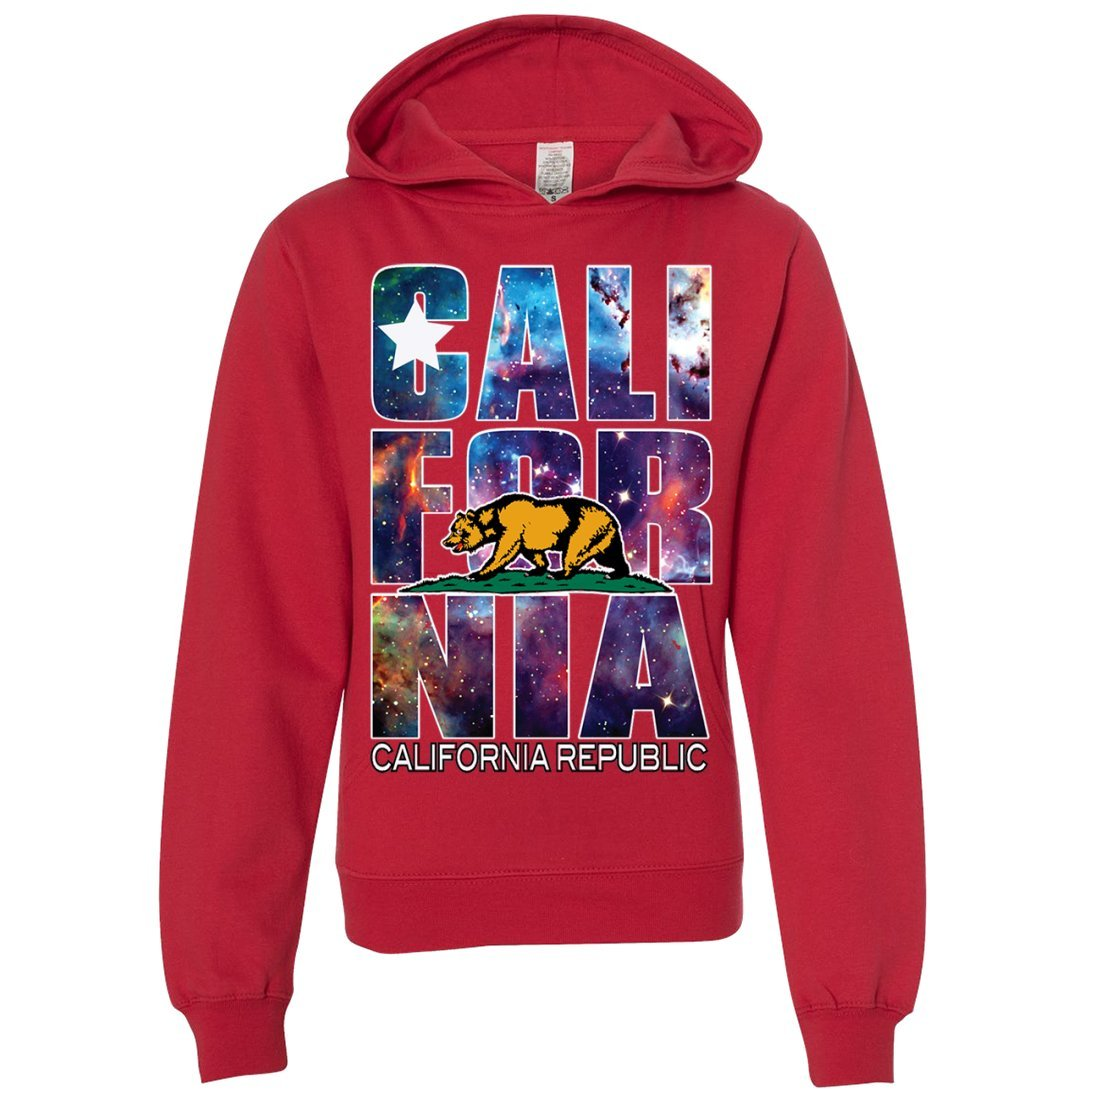 Dolphin Shirt Co California Republic Cosmic State Flag Space Galaxy Youth Sweatshirt Hoodie